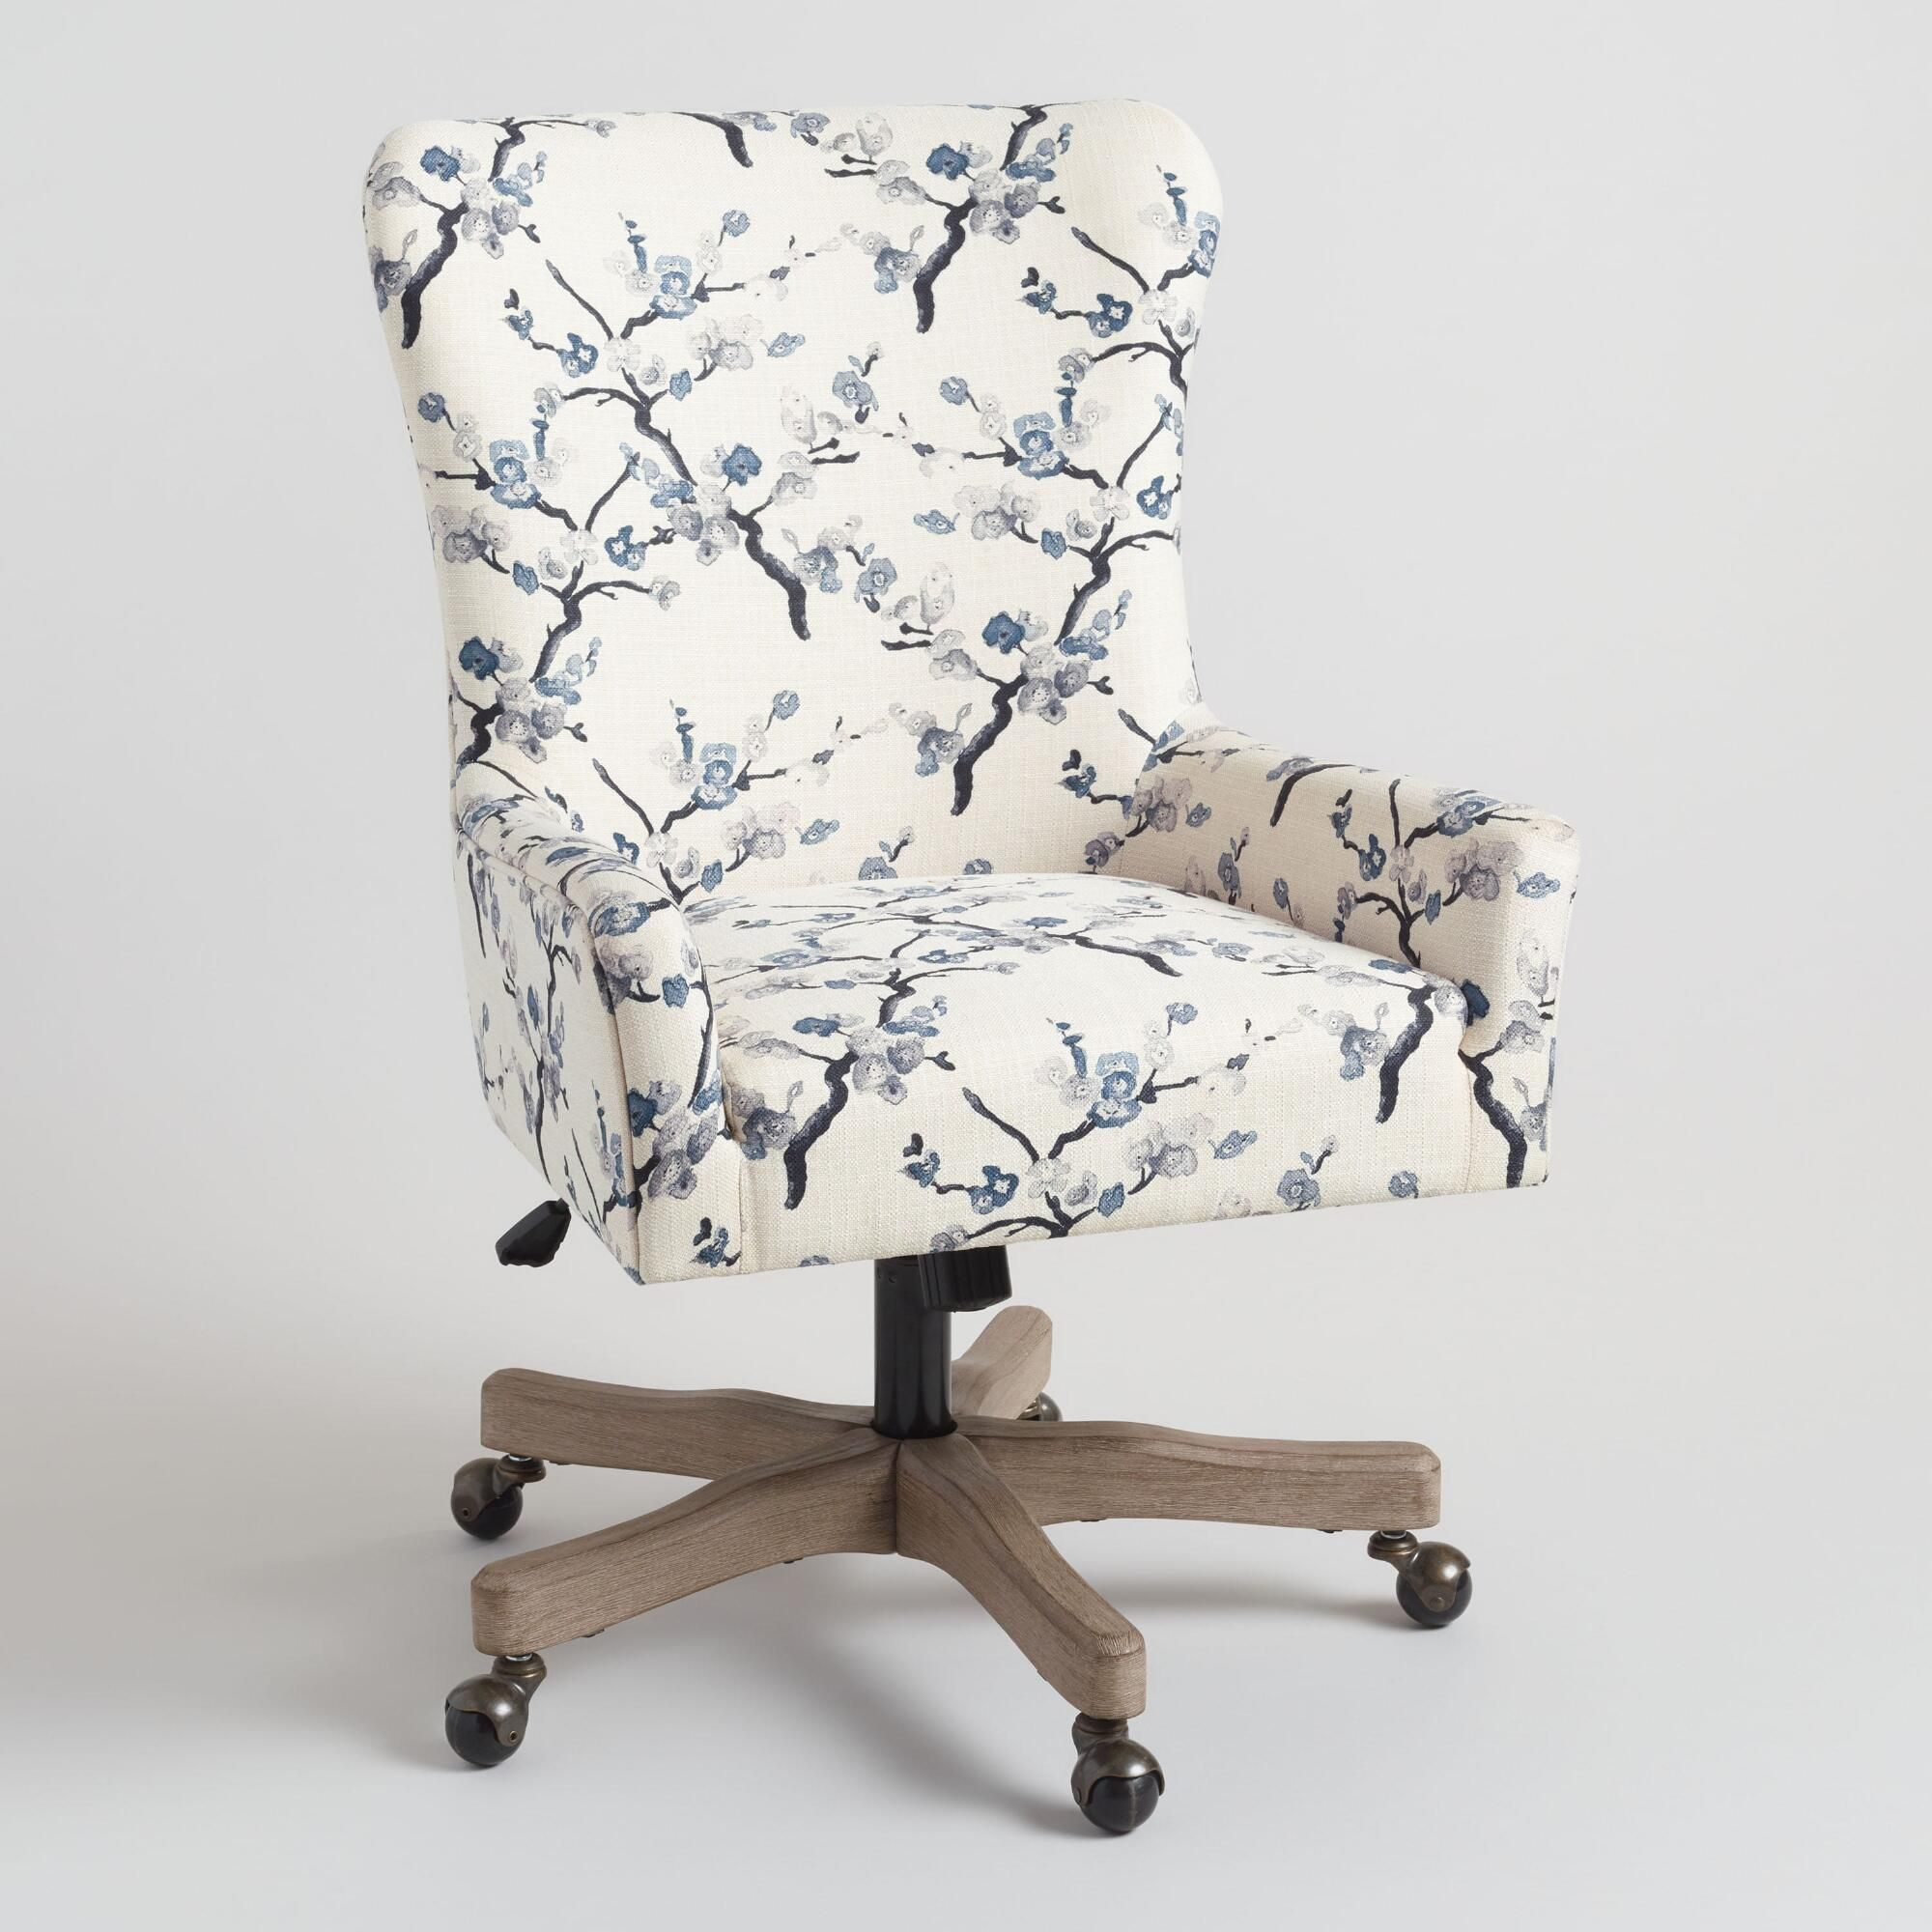 Ivory And Blue Blossom Trystan Upholstered Office Chair By World Market List Of The Best Office Chair Upholstered Office Chair Home Office Chairs Office Chair Upholstered desk chair with wheels